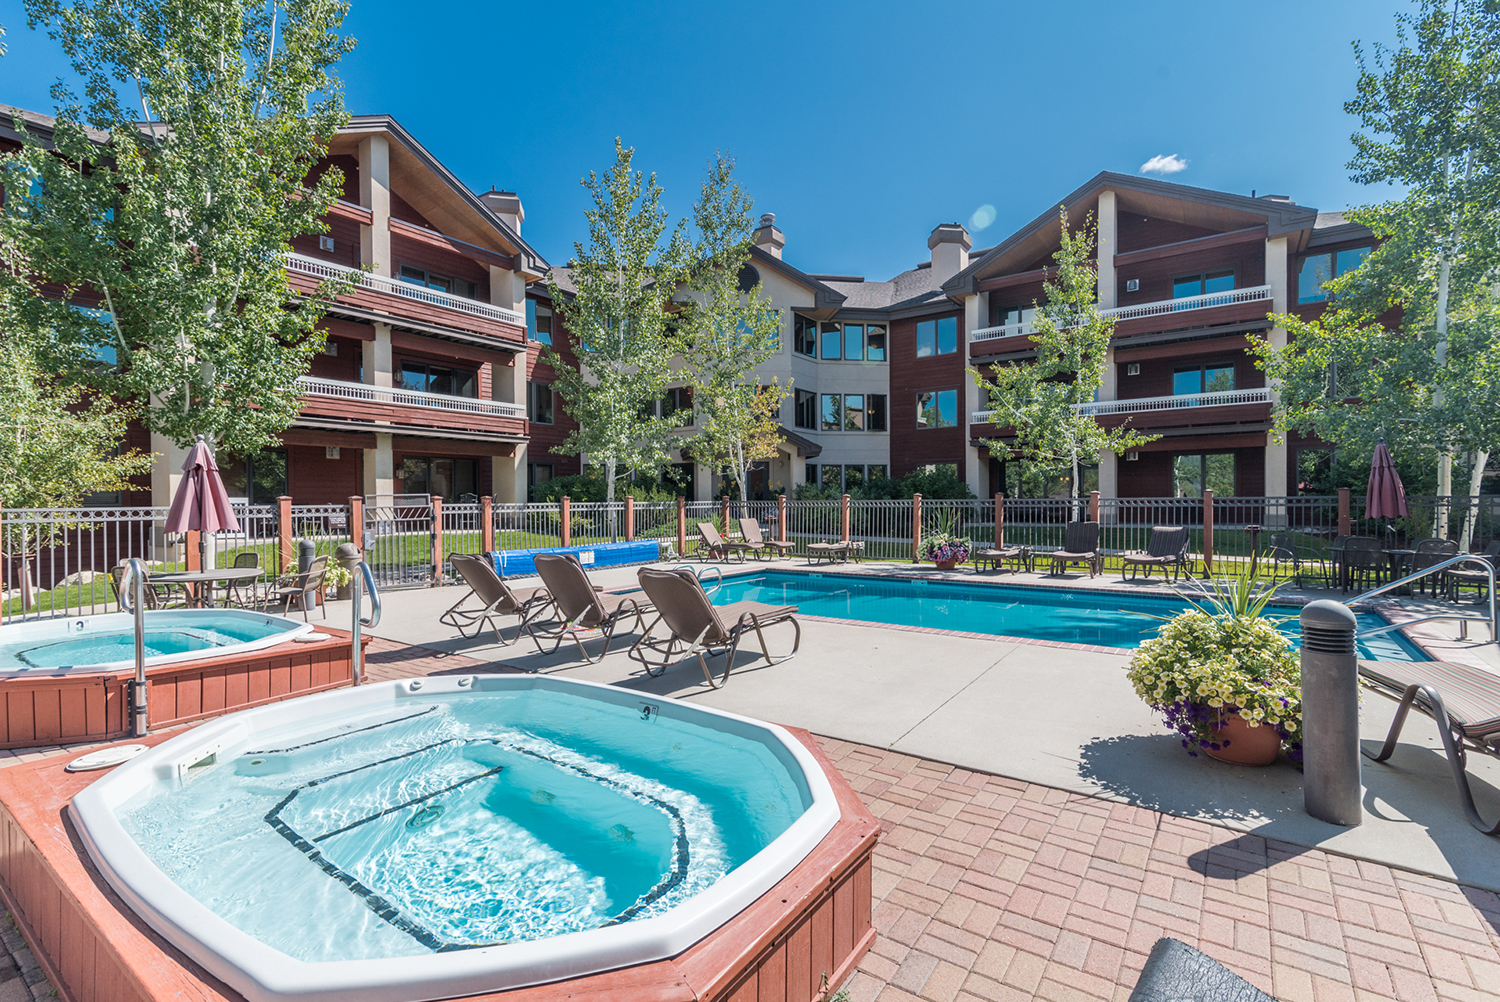 Champagne/Aspen Lodge Pool & Hot Tubs